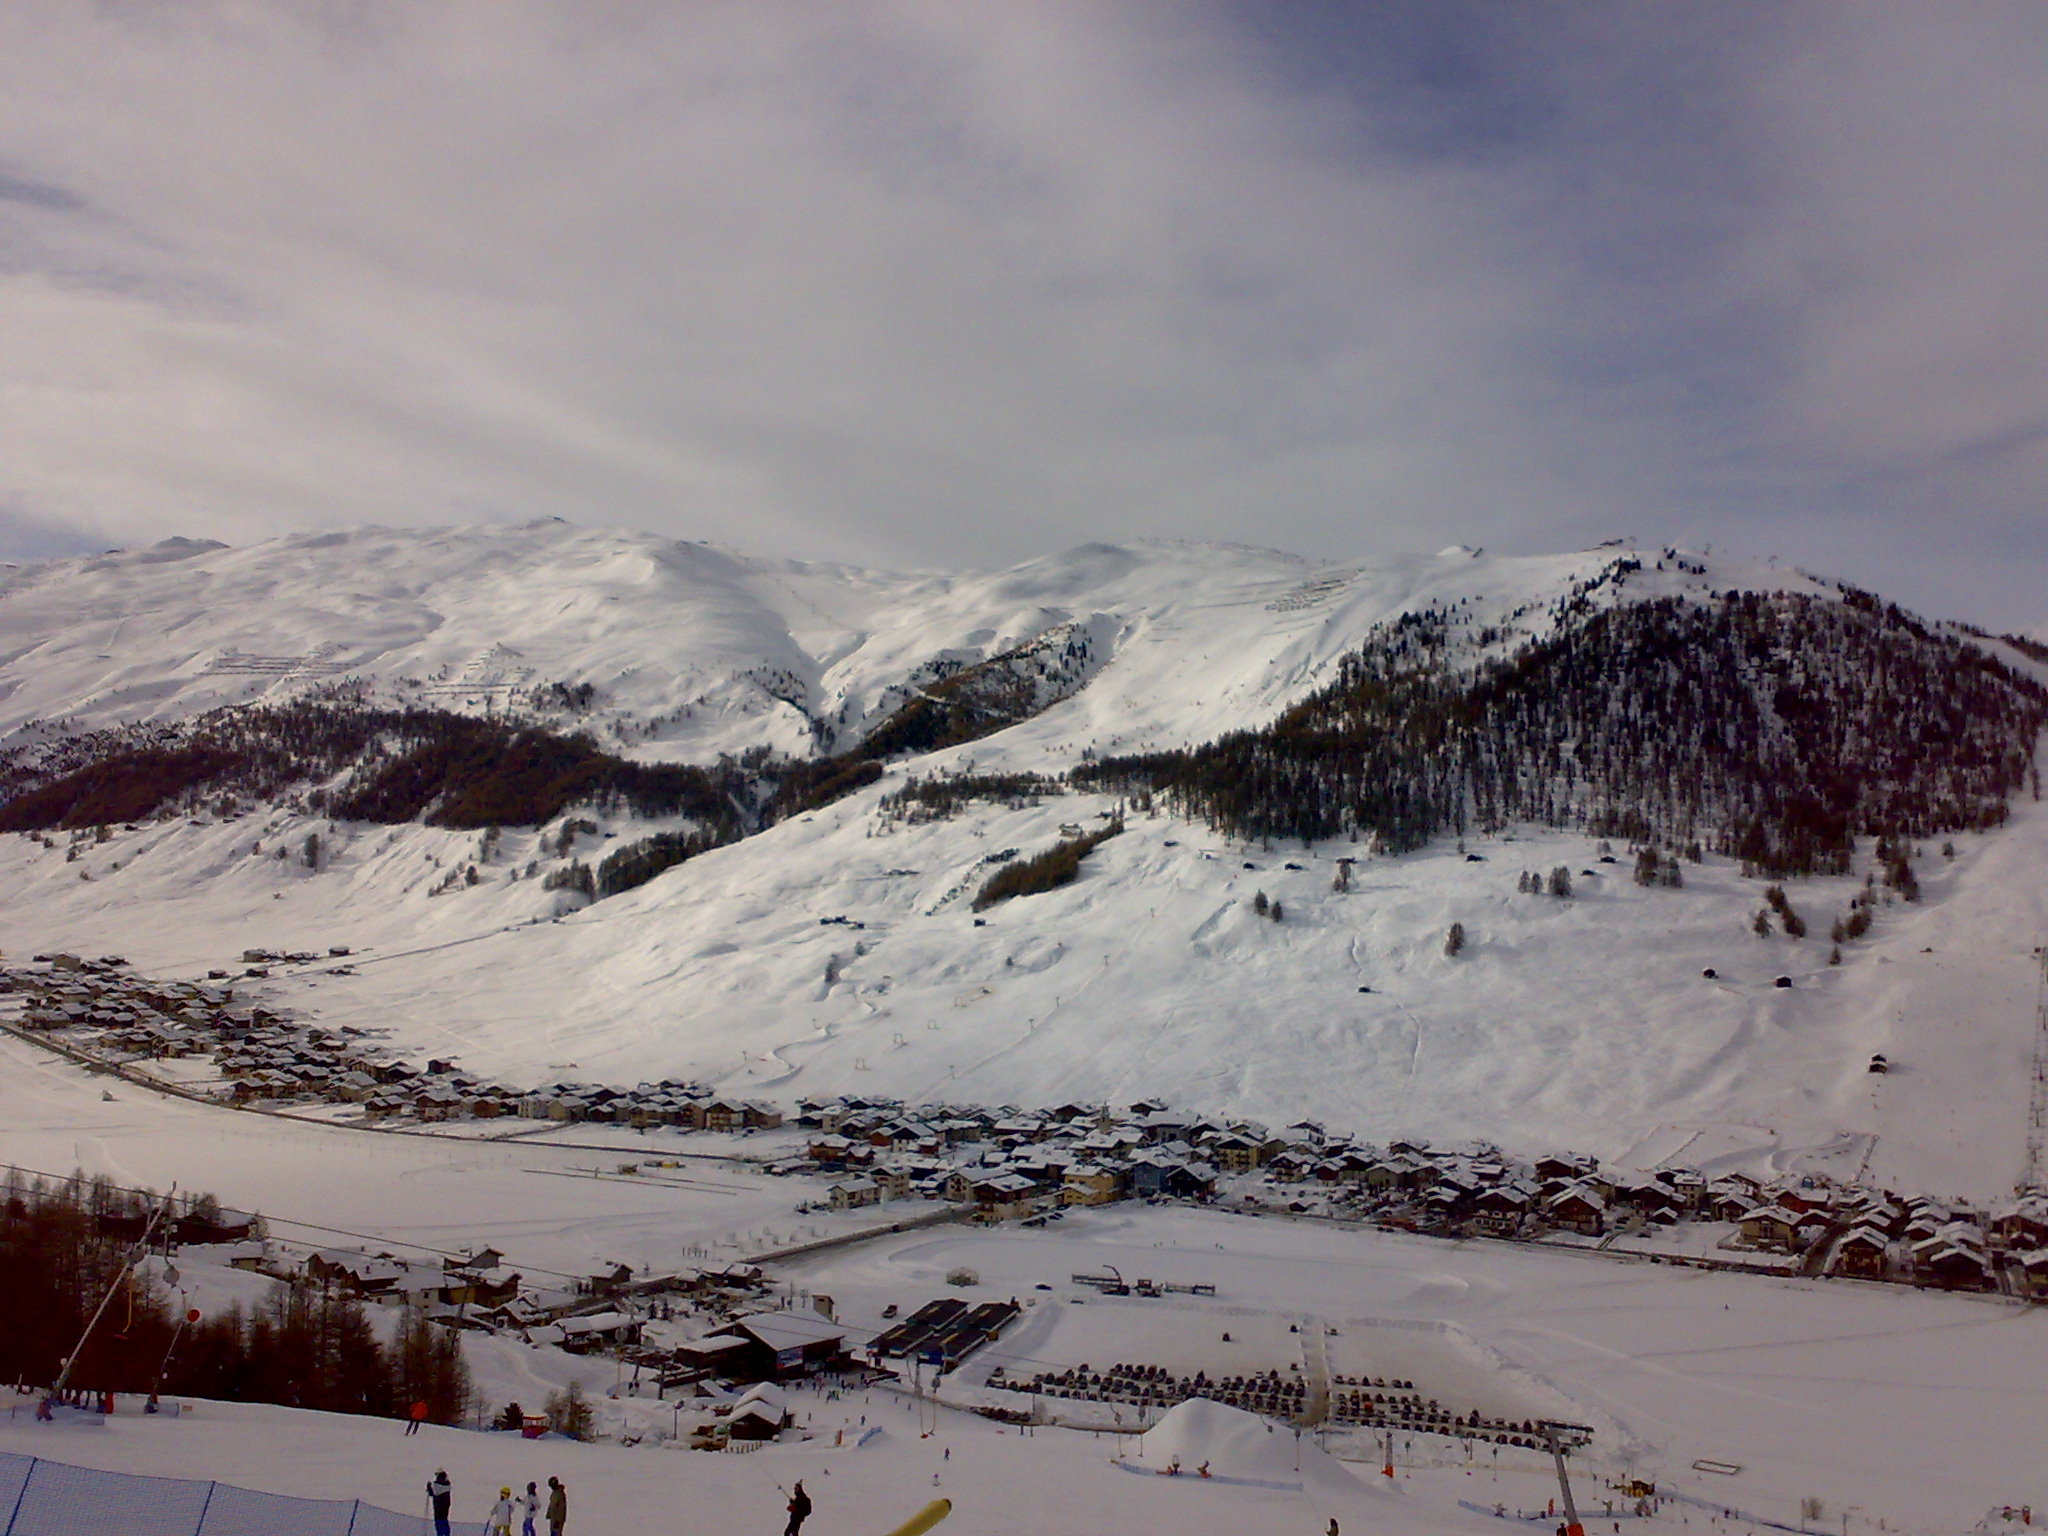 Livigno - View from Mottolino